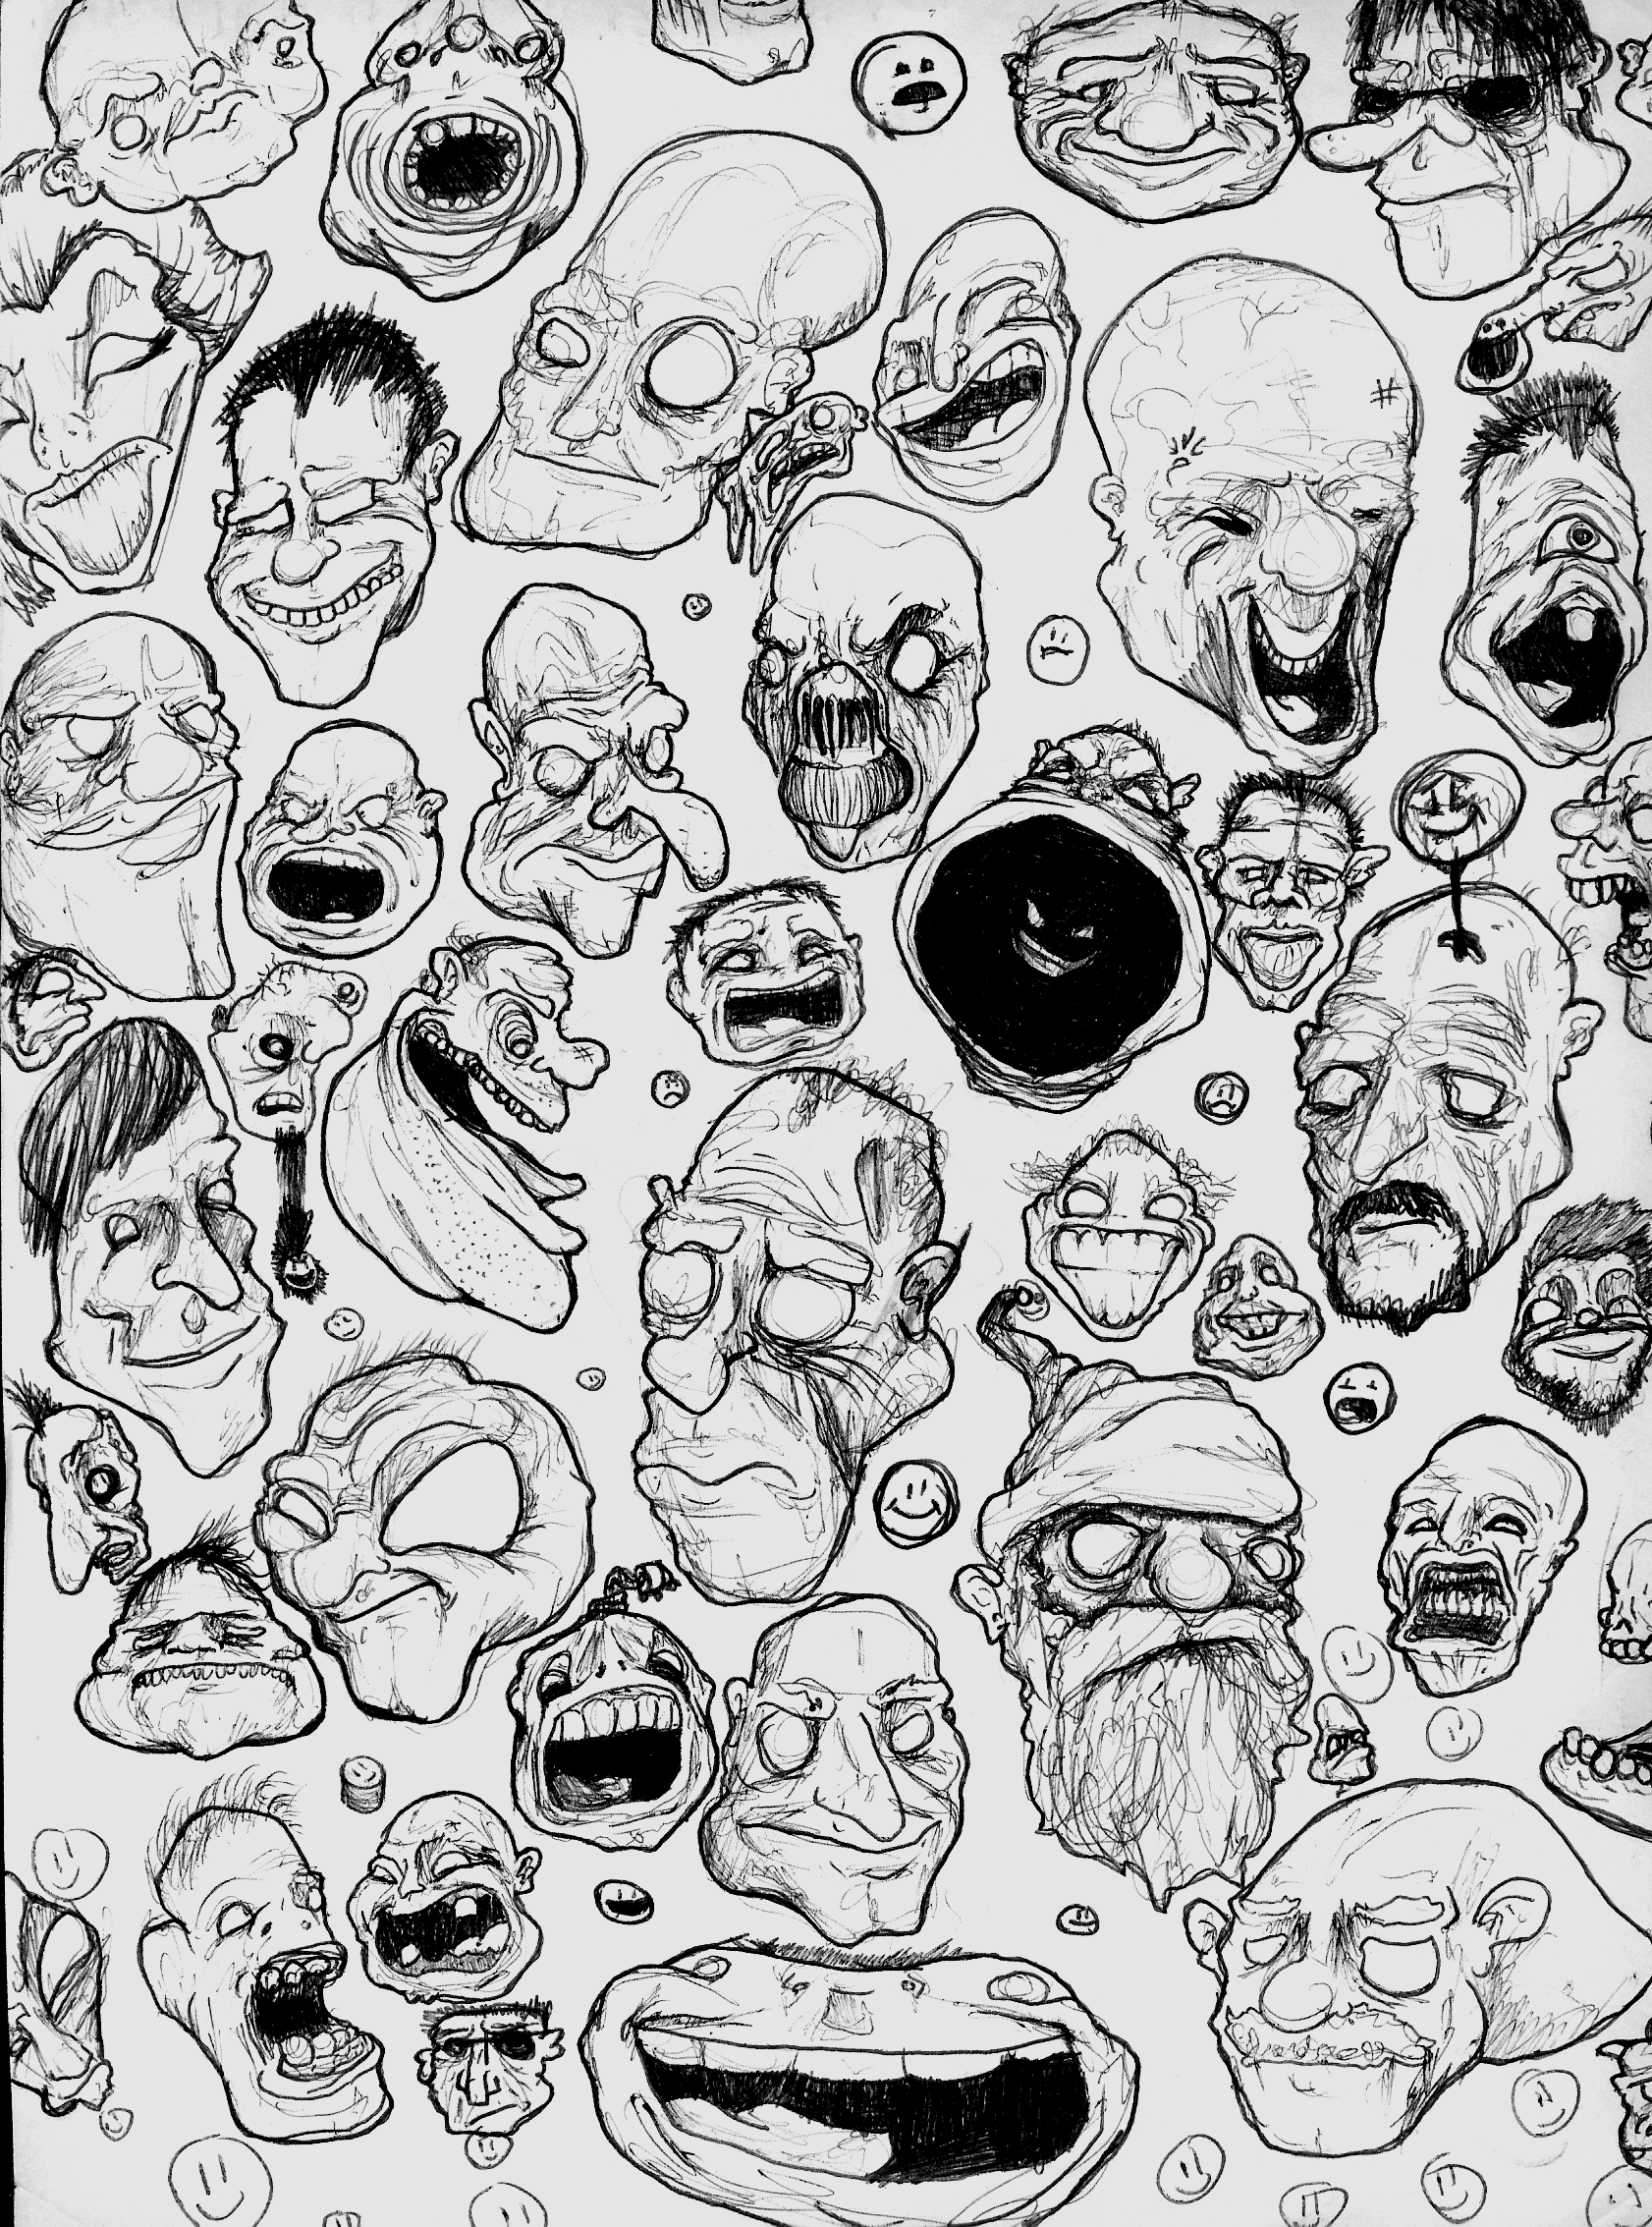 Lots O' Faces